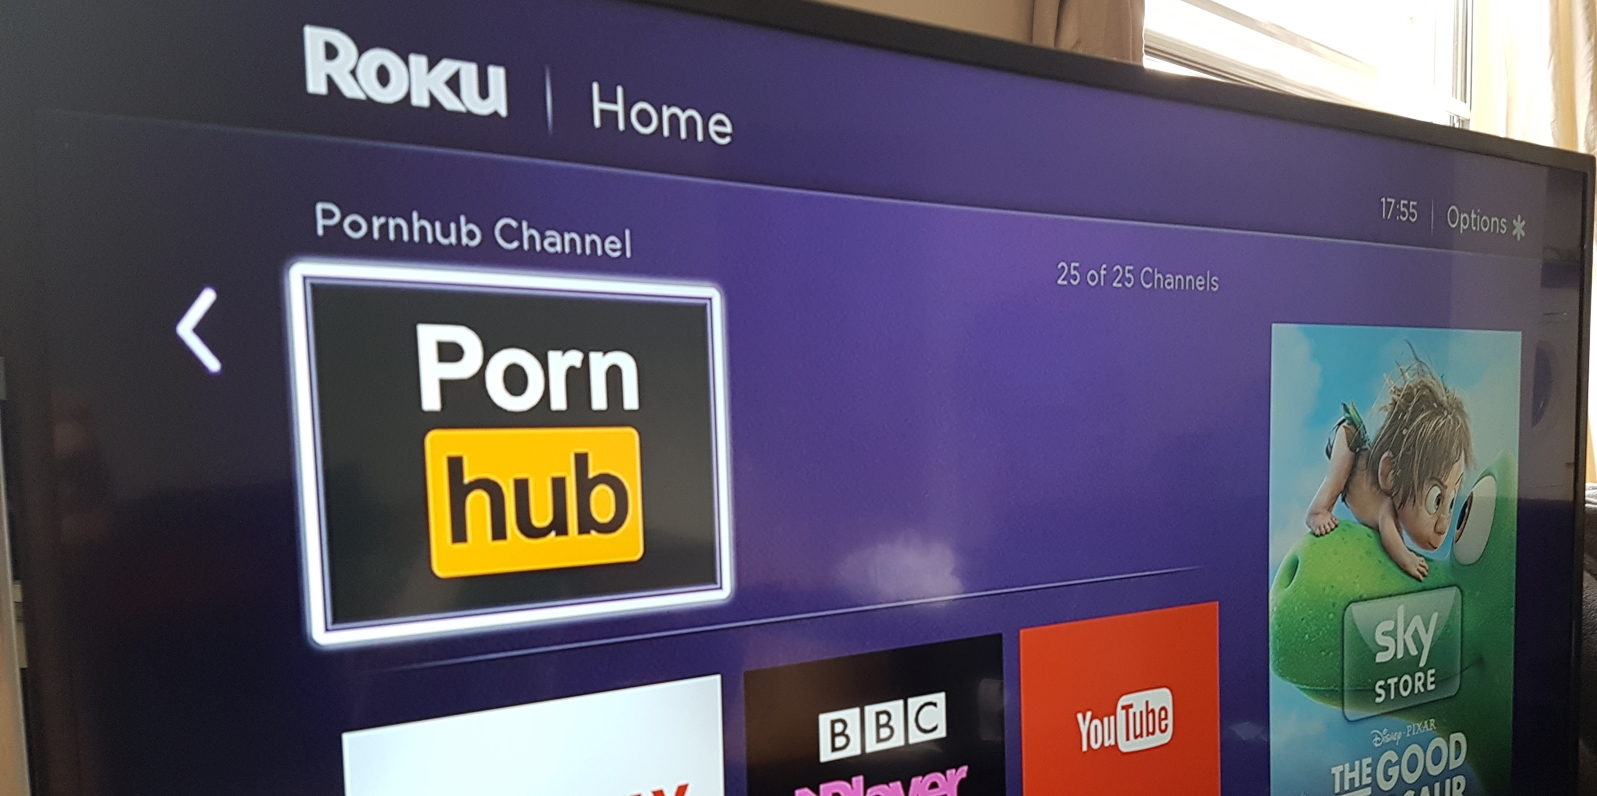 Free porn that i can watch